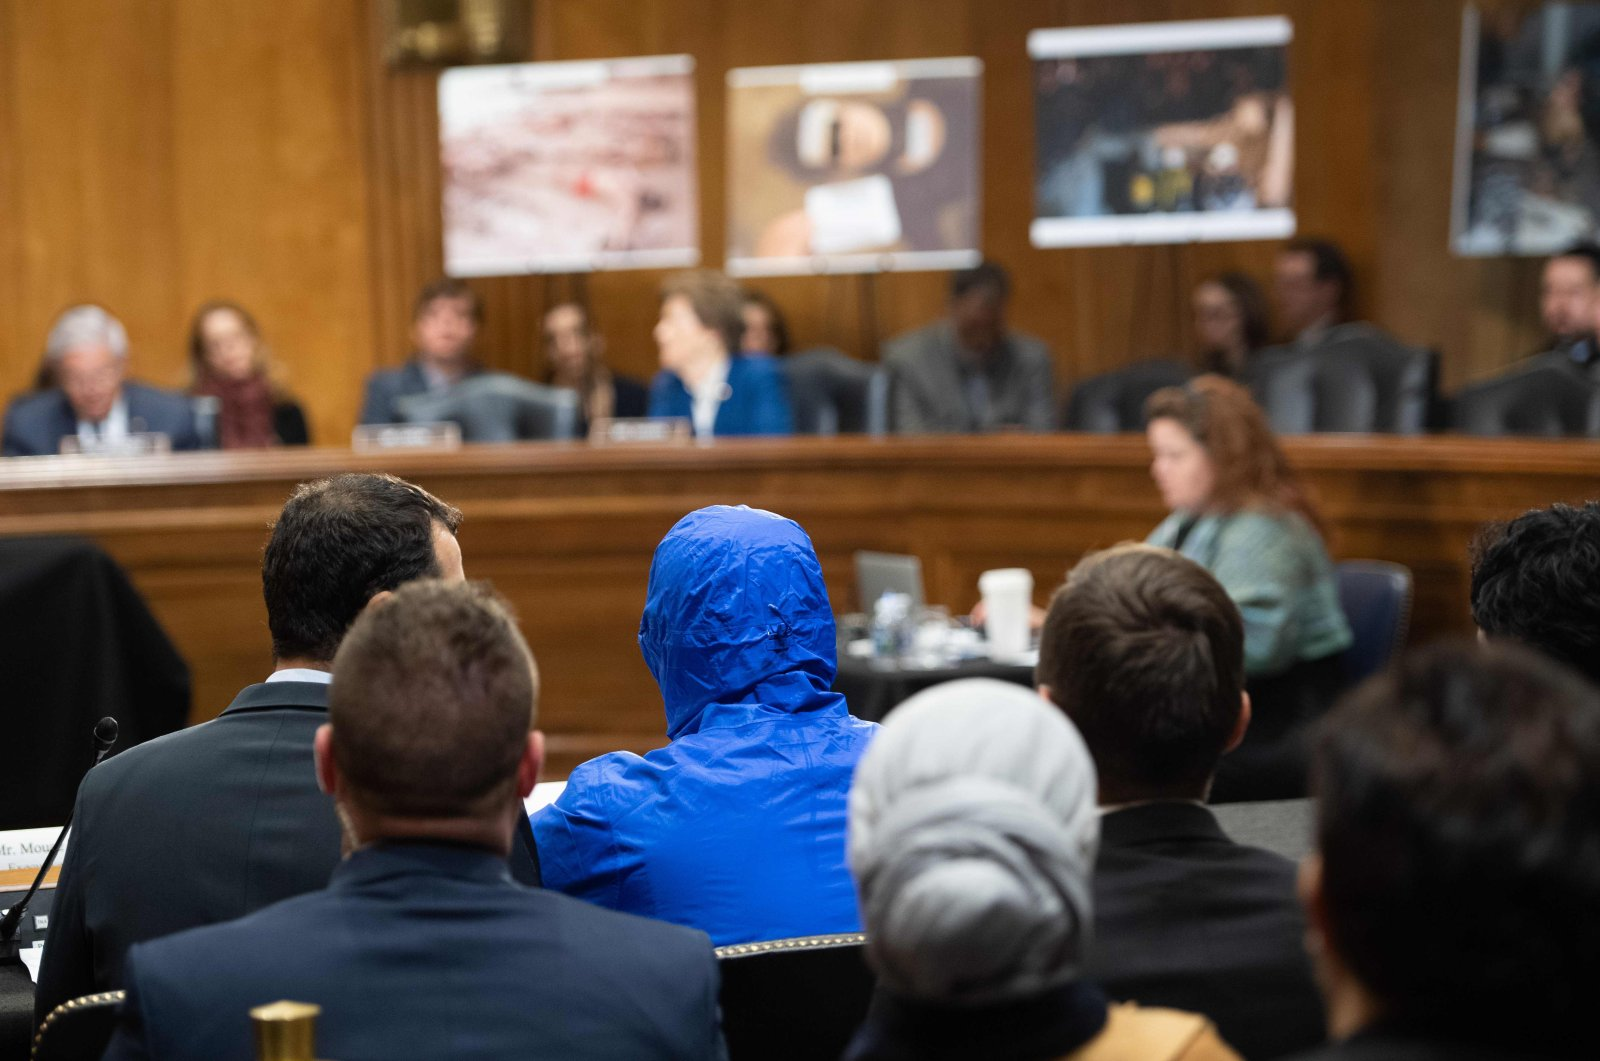 A Syrian military defector using the pseudonym Caesar, while also wearing a hood to protect his identity, testifies about the war in Syria during a Senate Foreign Relations committee hearing on Capitol Hill in Washington, DC, March 11. (AFP Photo)